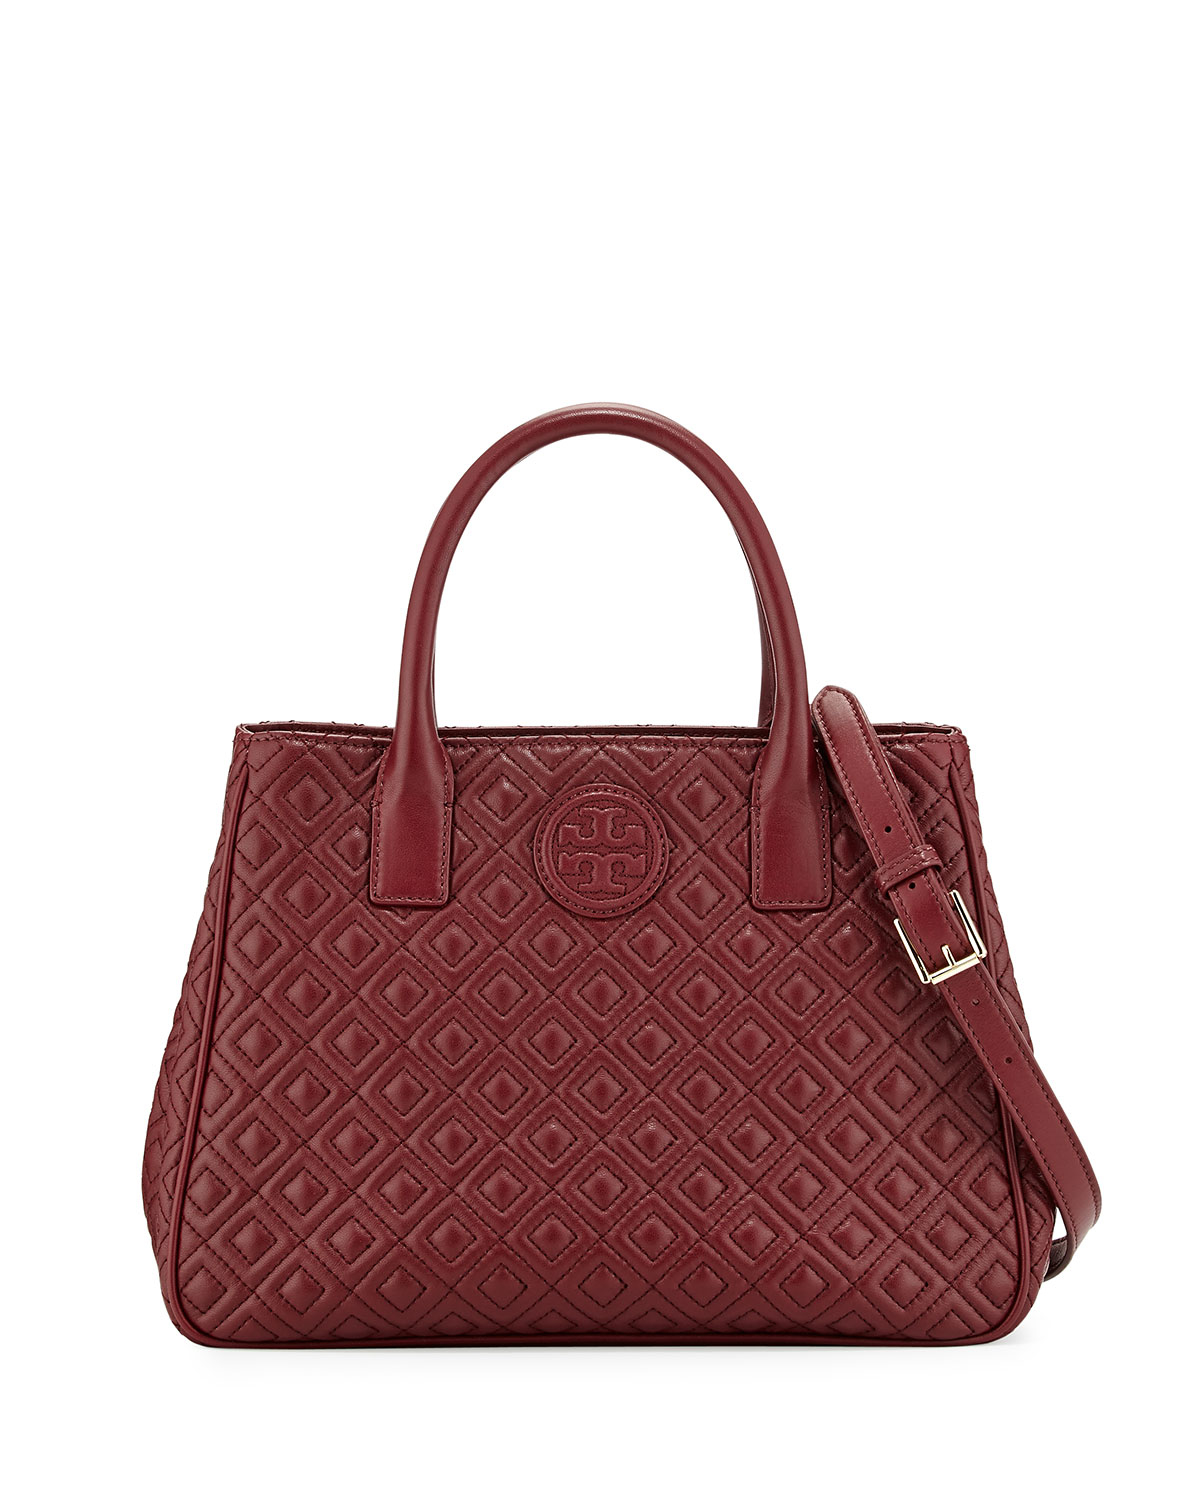 Tory Burch Marion Quilted Tote Bag In Red Lyst